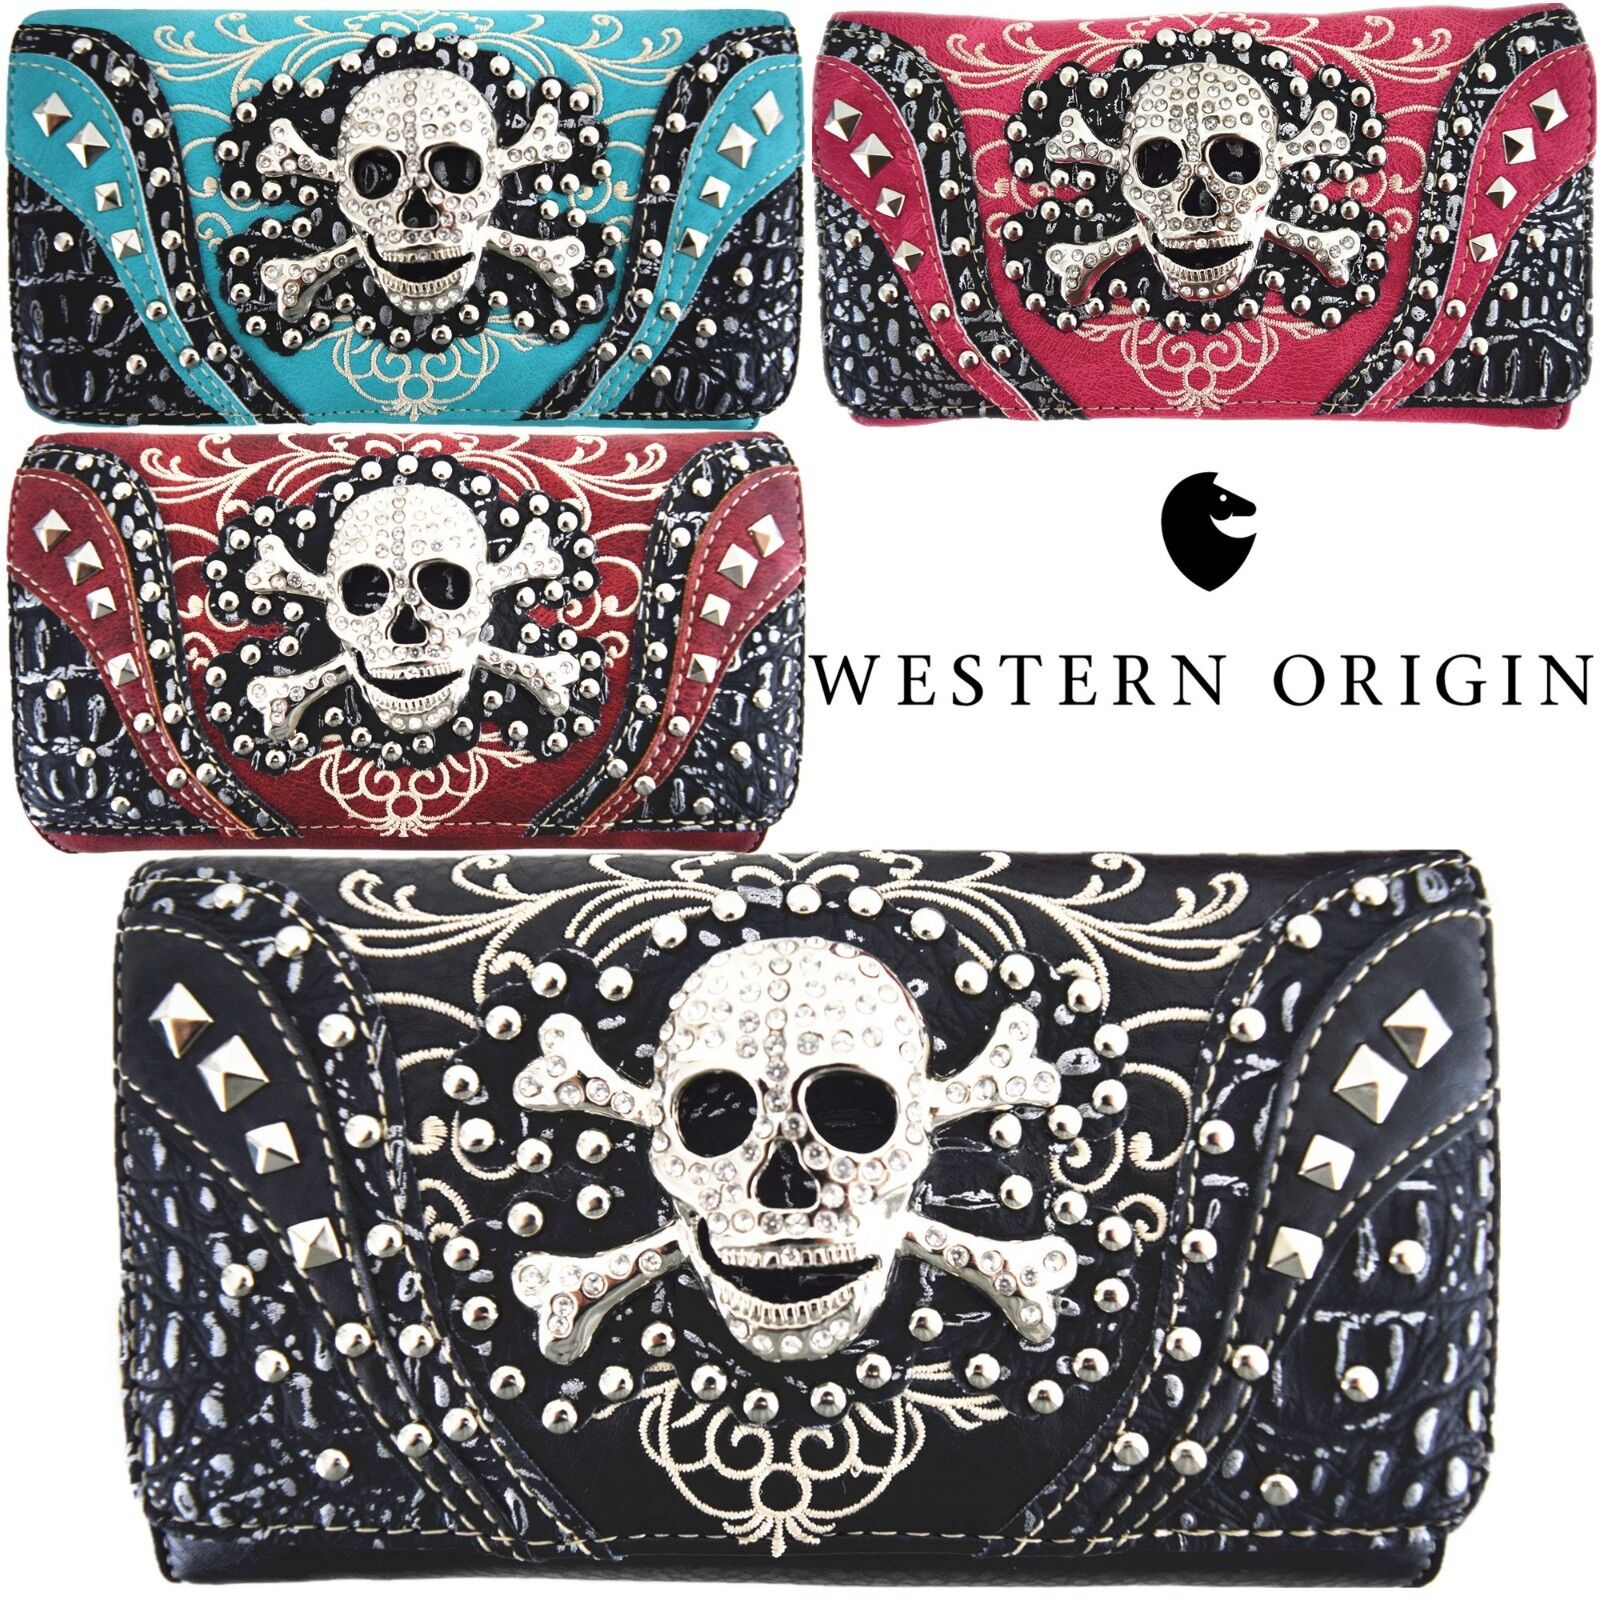 Western Style Sugar Skull Studded Purse Single Shoulder Bags